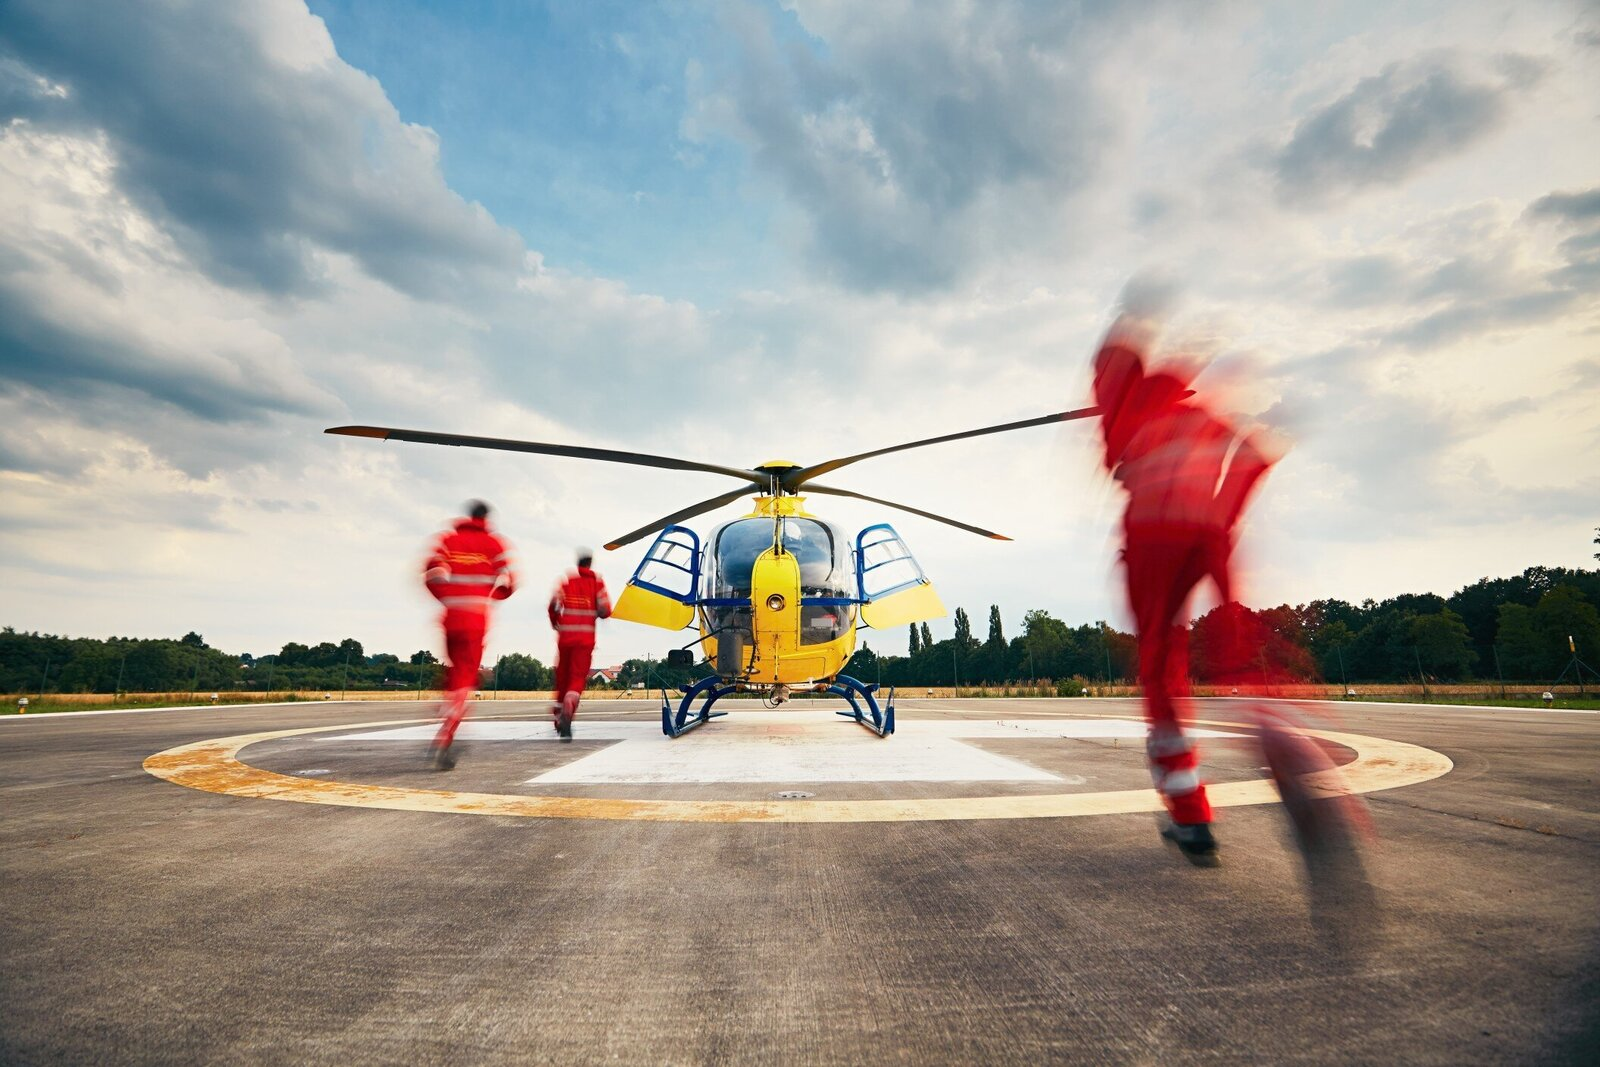 alarm-for-the-air-rescue-service-team-of-rescuers-paramedic-doctor-and-pilot-running-to-the-on-the_t20_QQ8zGE